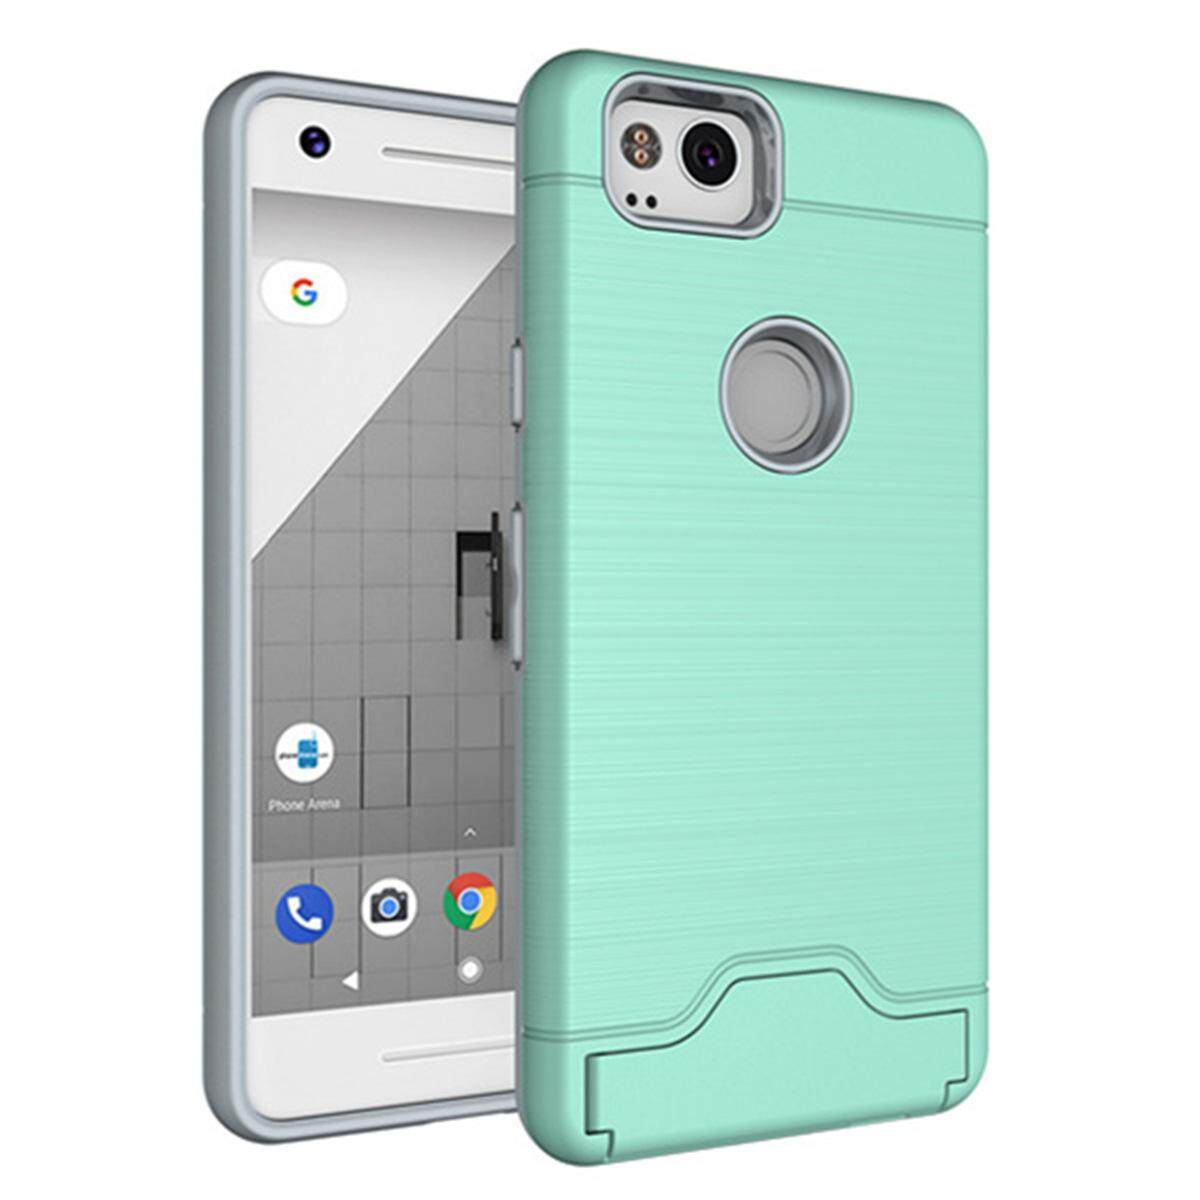 Hình ảnh for Google Pixel 2 Case [Hidden Card Slot] Hard PC + TPU Hybrid Back Armor Case Cover, with Cryptic Card Storage Slot, Skidproof, Minimalist - intl